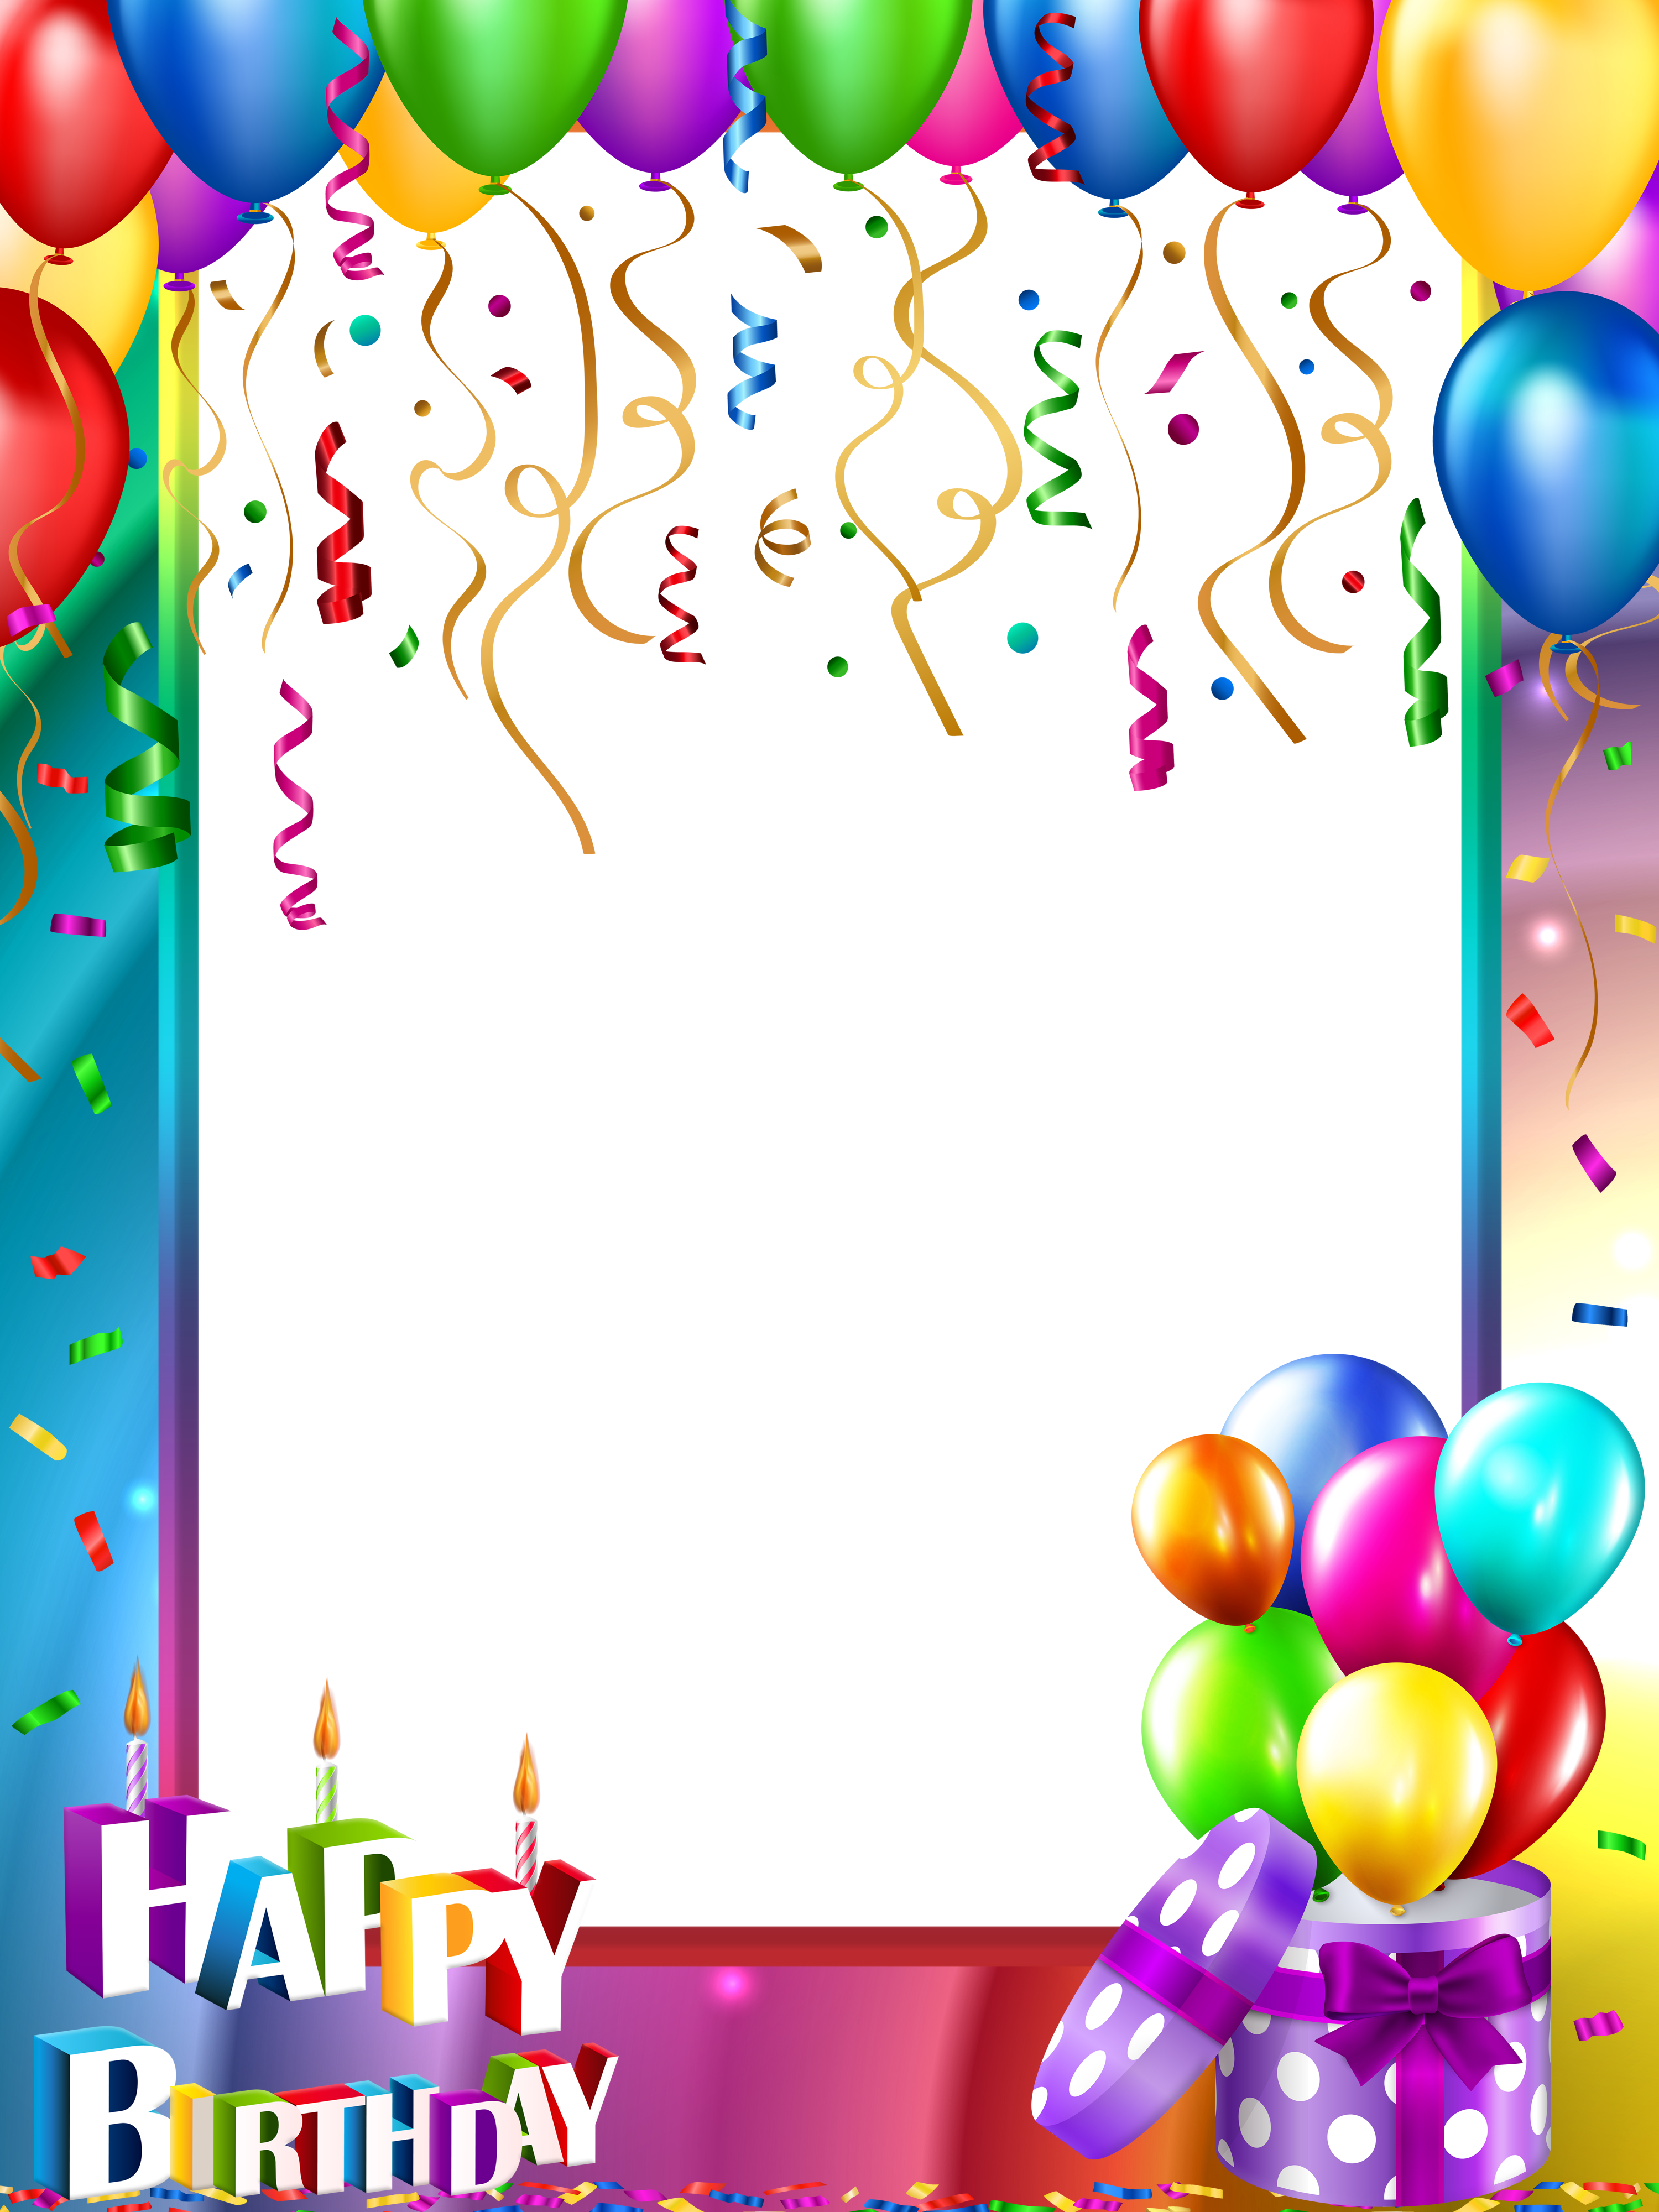 Happy Birthday PNG Transparent Frame | Gallery Yopriceville - High ...